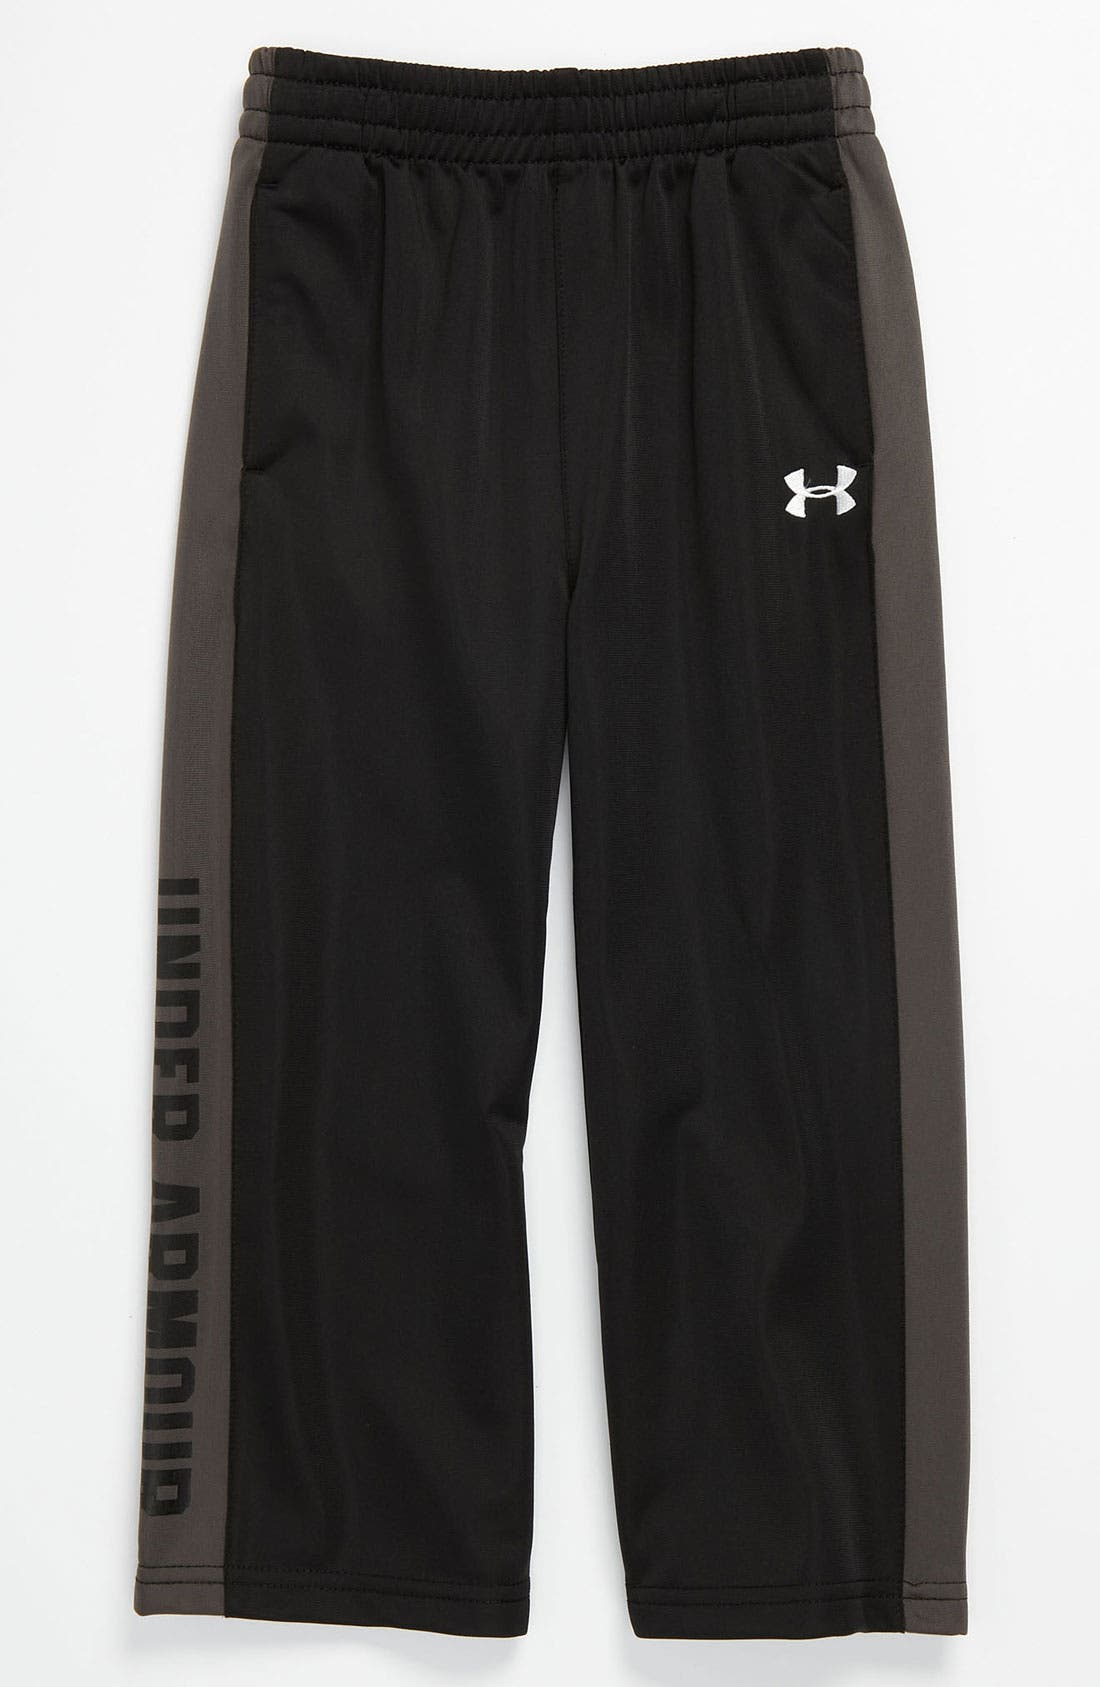 Alternate Image 1 Selected - Under Armour Tricot Pants (Toddler)